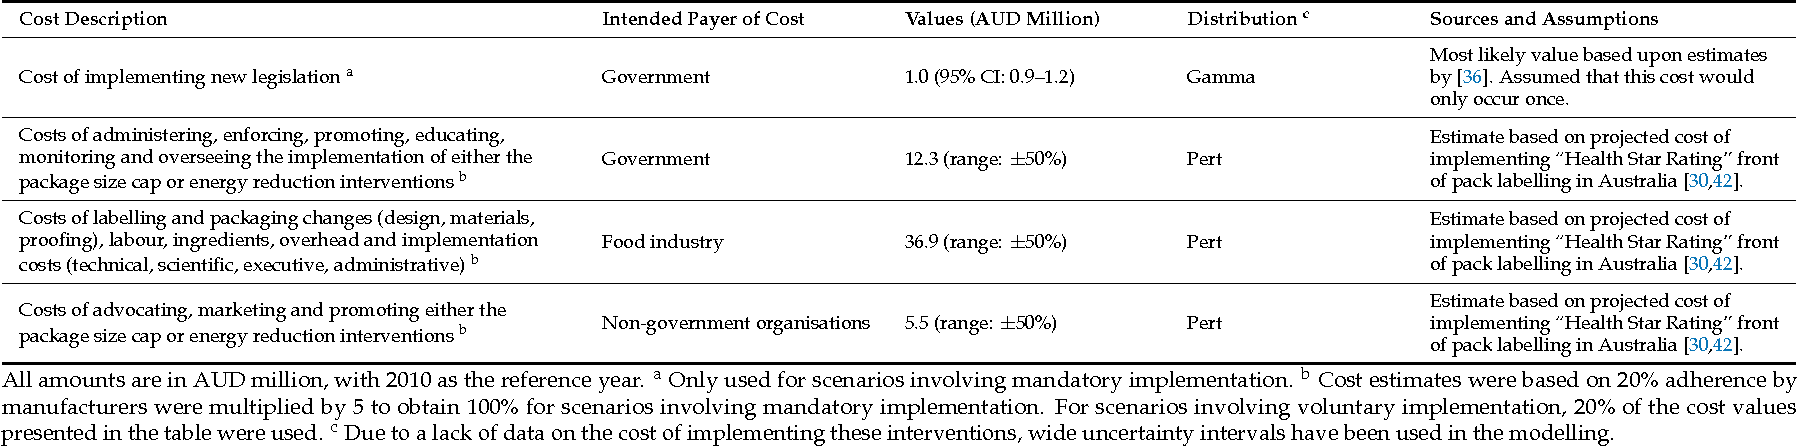 Table 3. Intervention costs (adjusted to 2010 AUD) with associated uncertainty distributions and assumptions.